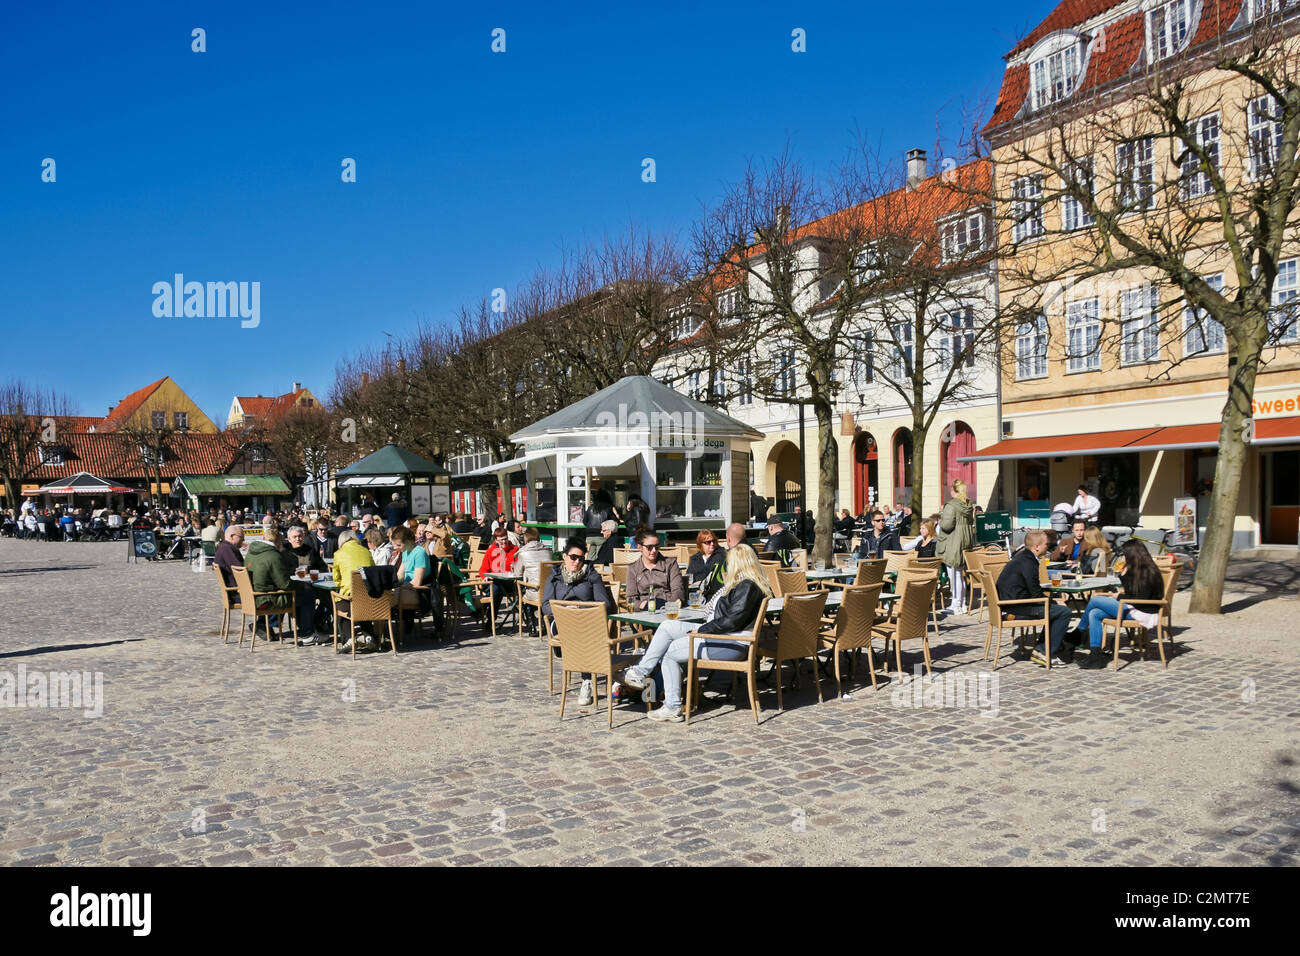 People enjoying good food and drink in the Elsinore town square Denmark - Stock Image